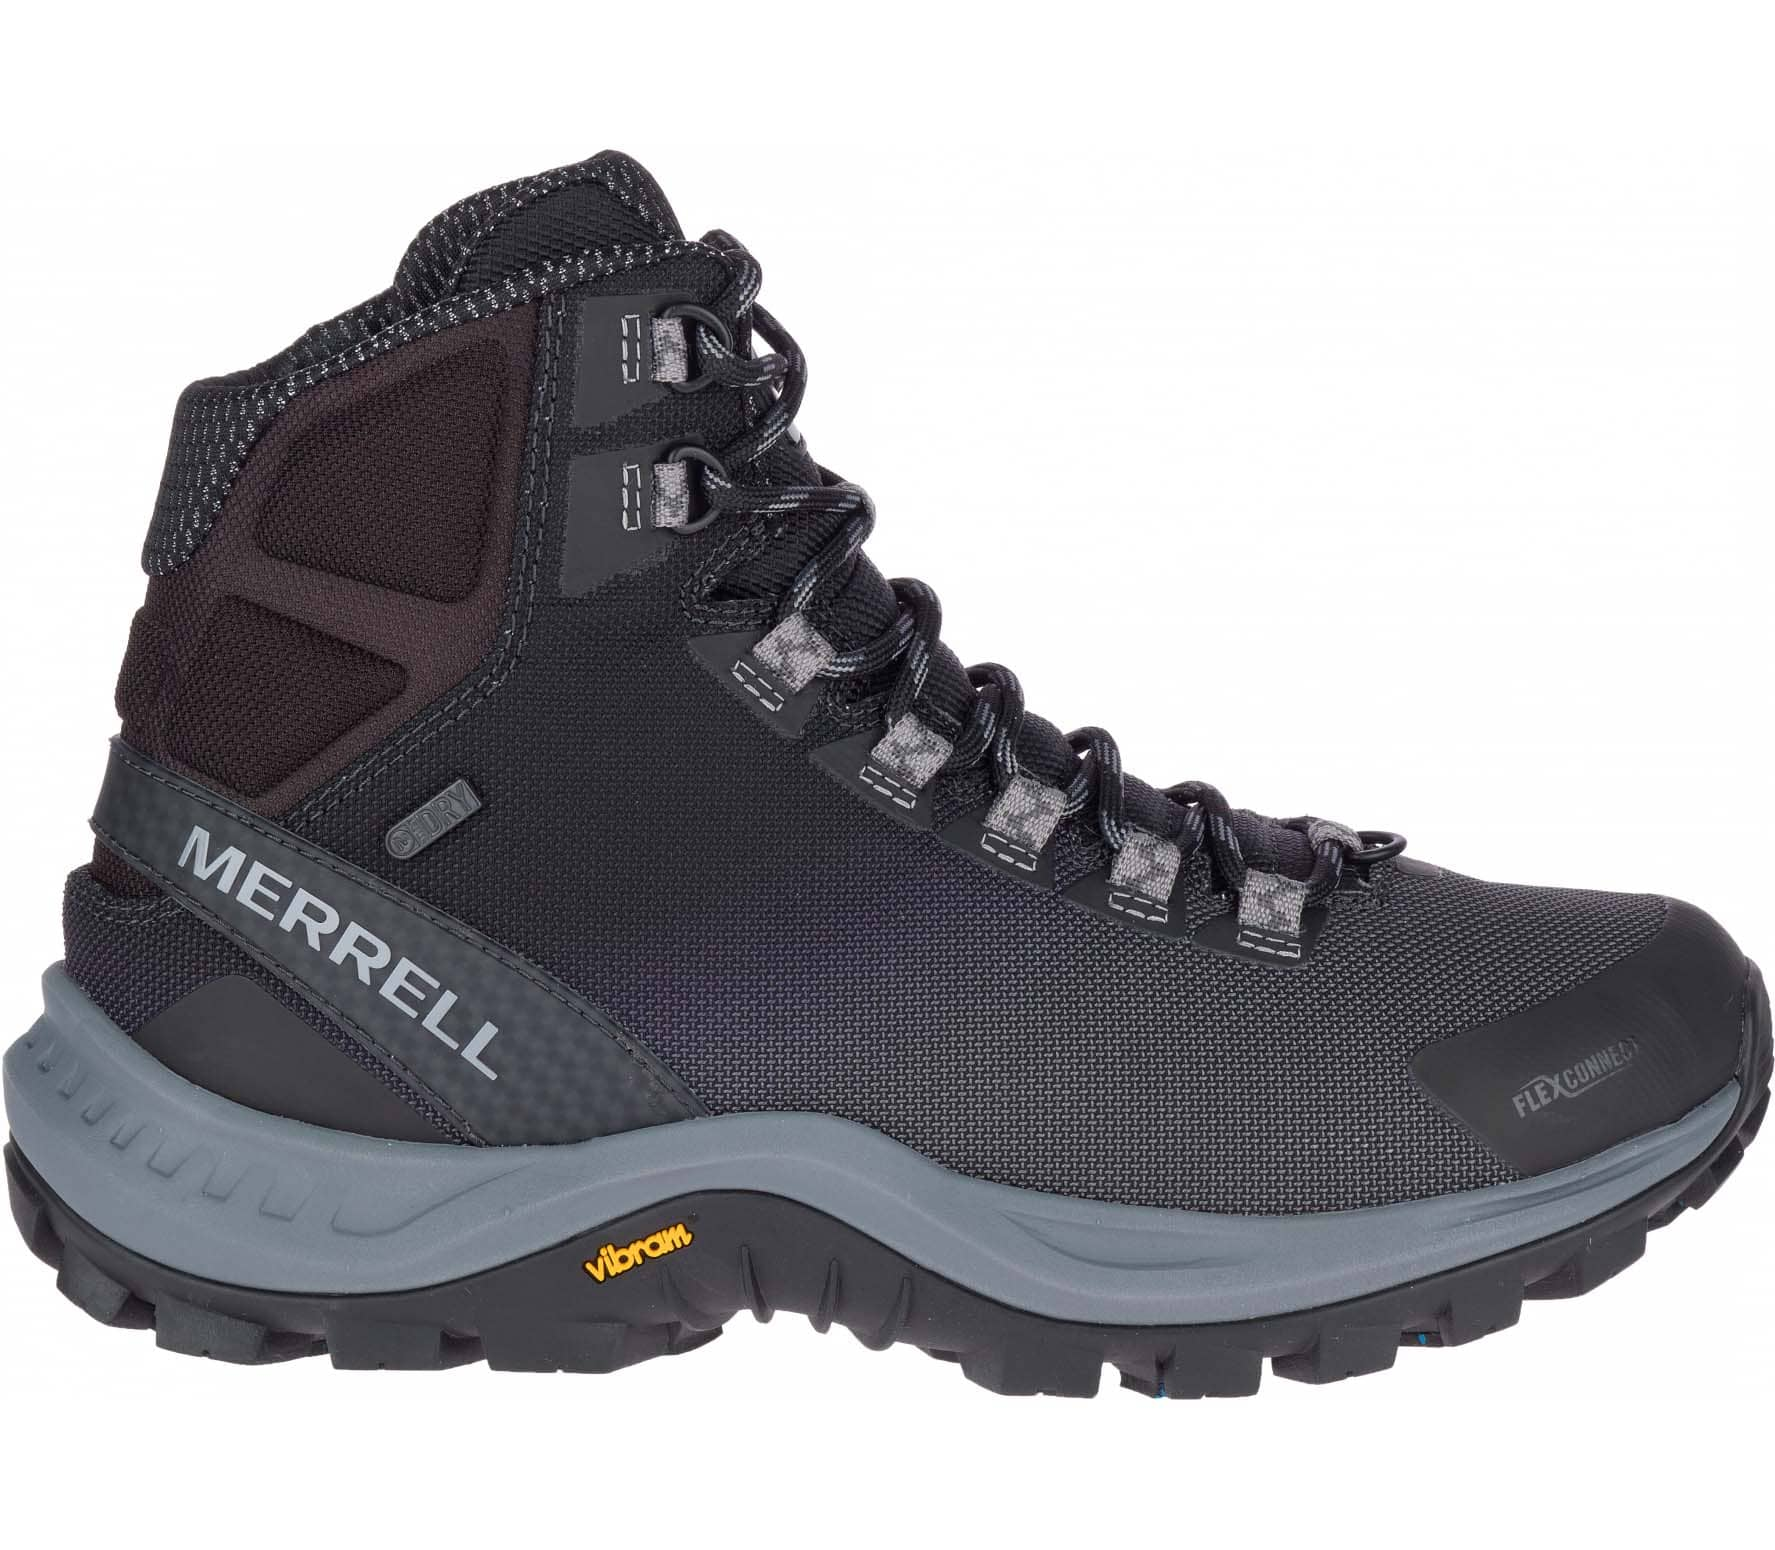 Merrell Thermo Cross 2 mid WP Herren Winterschuhe (grau) 179,90 €